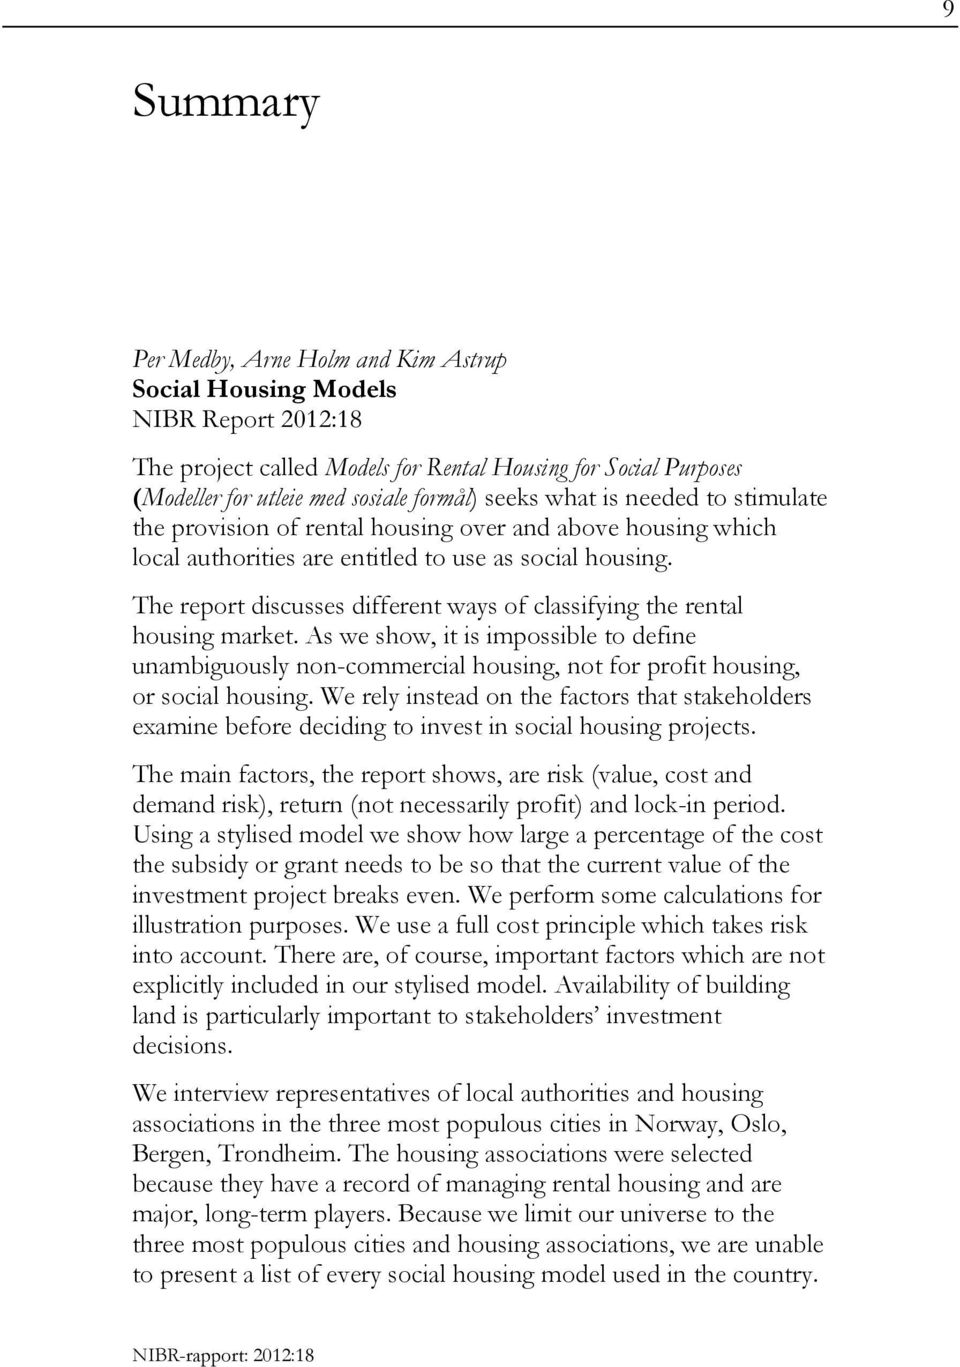 The report discusses different ways of classifying the rental housing market. As we show, it is impossible to define unambiguously non-commercial housing, not for profit housing, or social housing.